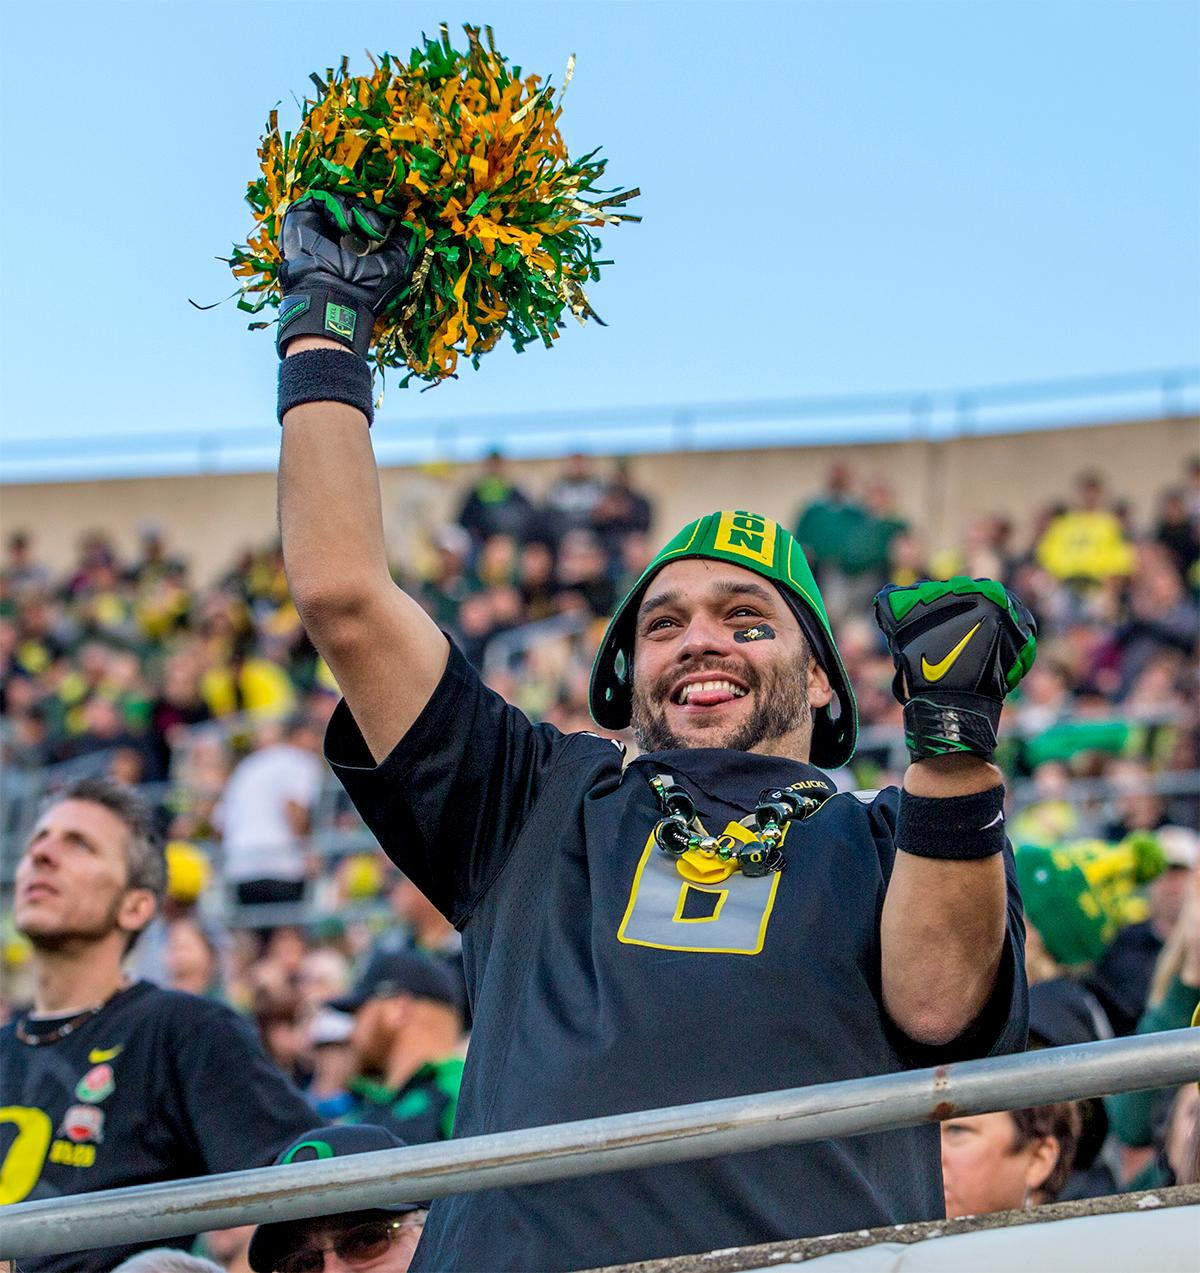 The Duck's fans had reason to celebrate as the Oregon Ducks broke their losing streak by defeating the ASU Sun Devils on Saturday 54-35. Photo by August Frank, Oregon News Lab